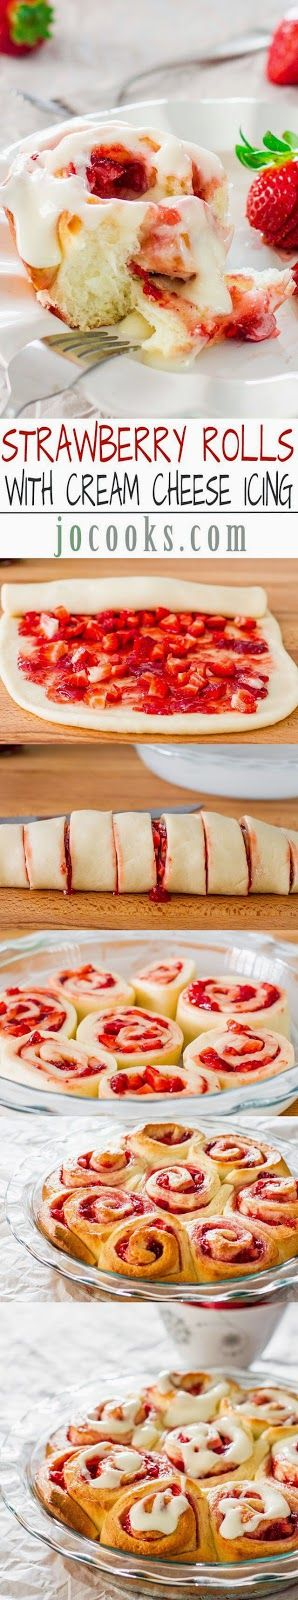 Strawberry Rolls with Cream Cheese Icing - Looks like a good substitute for the cinnamon rolls I can't have!